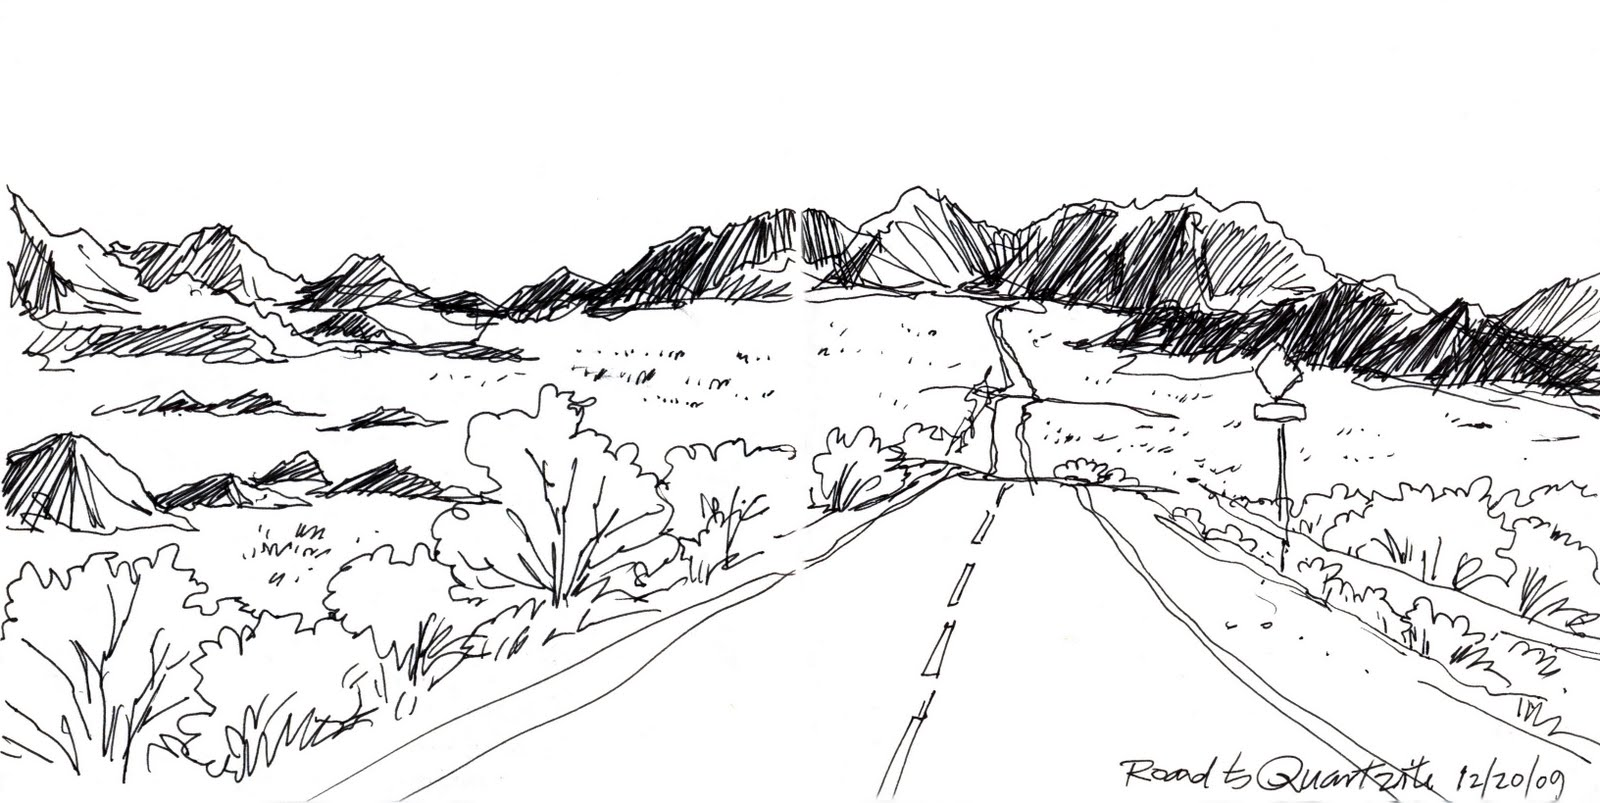 Works in Progress...On Location: Drawing on Location in the Desert